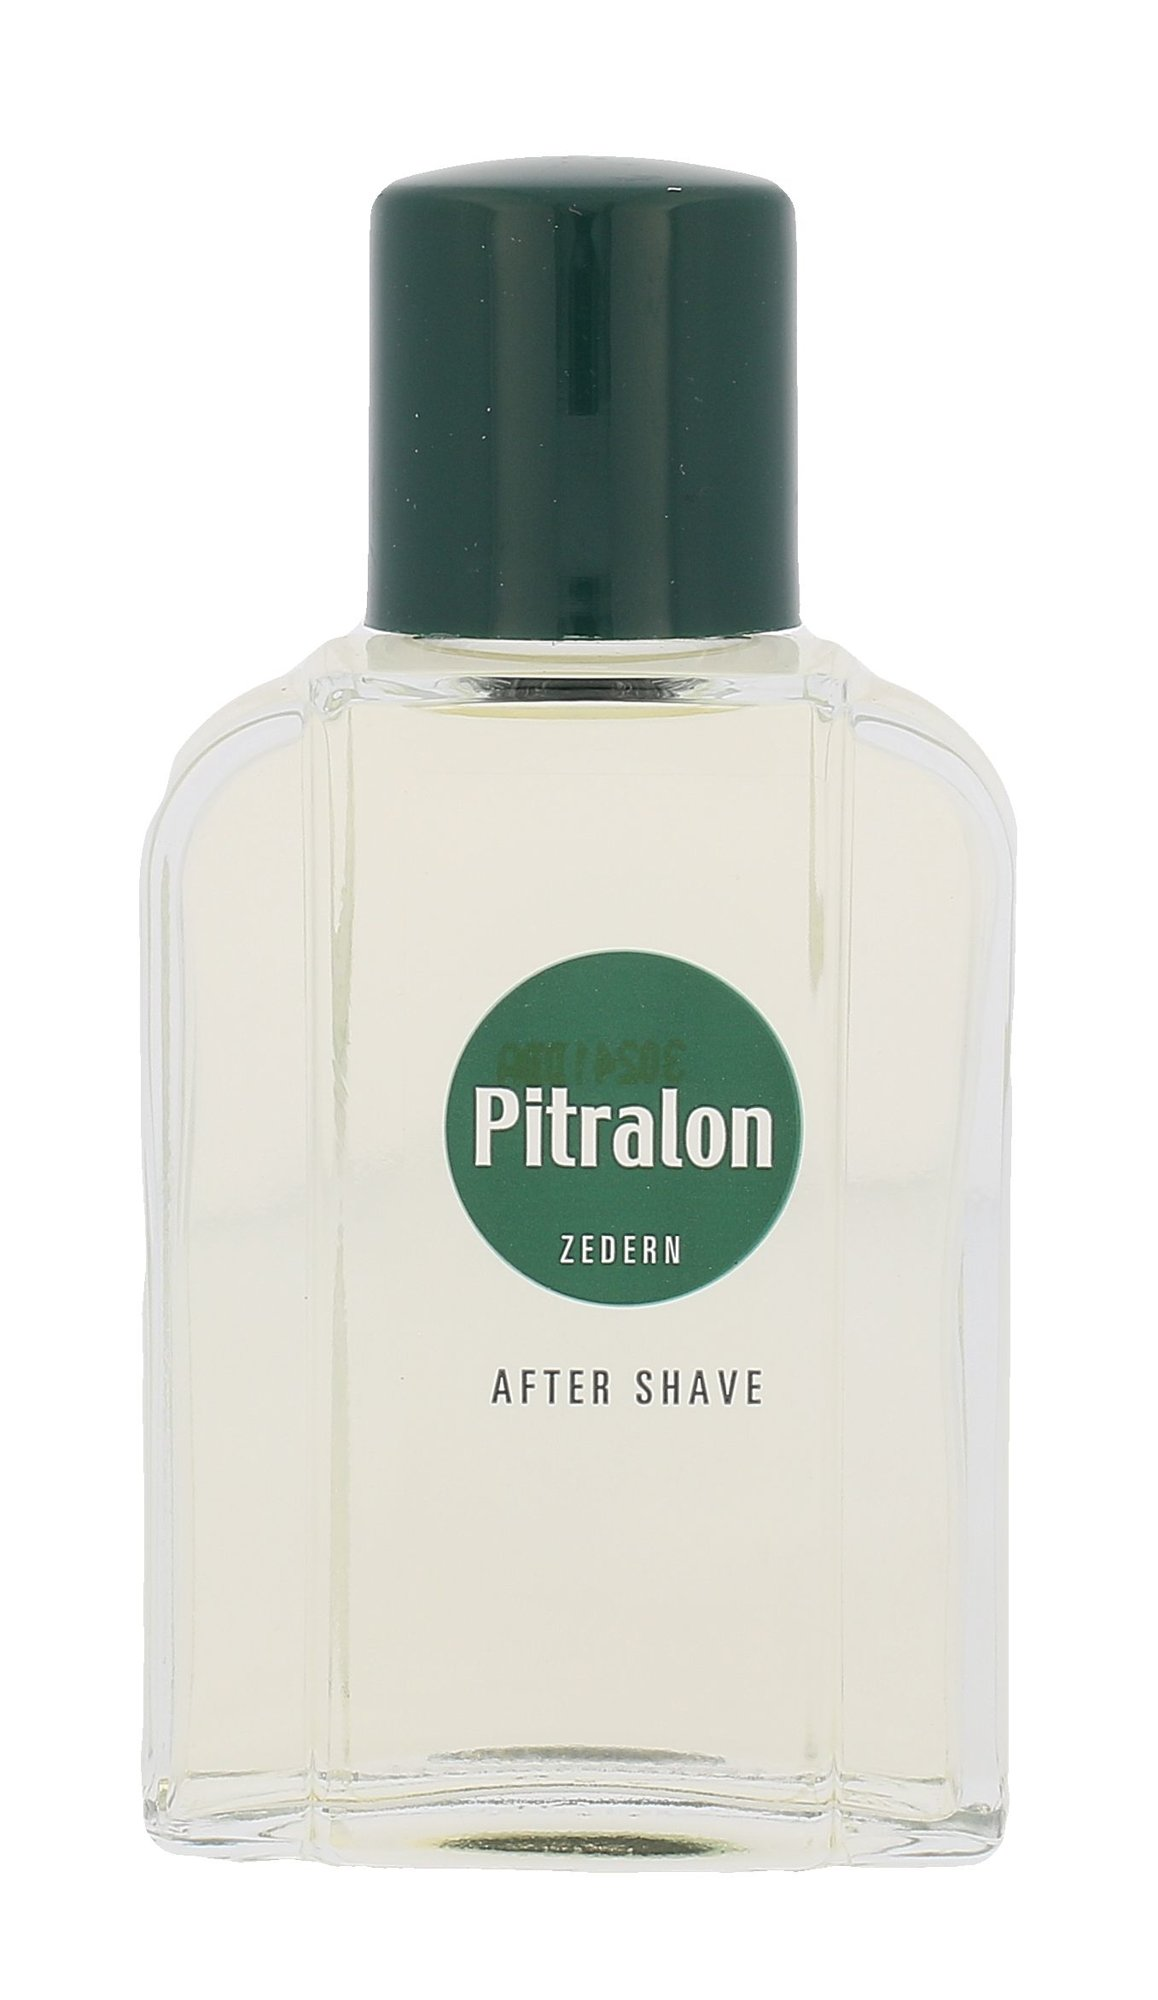 Pitralon Classic Aftershave 100ml